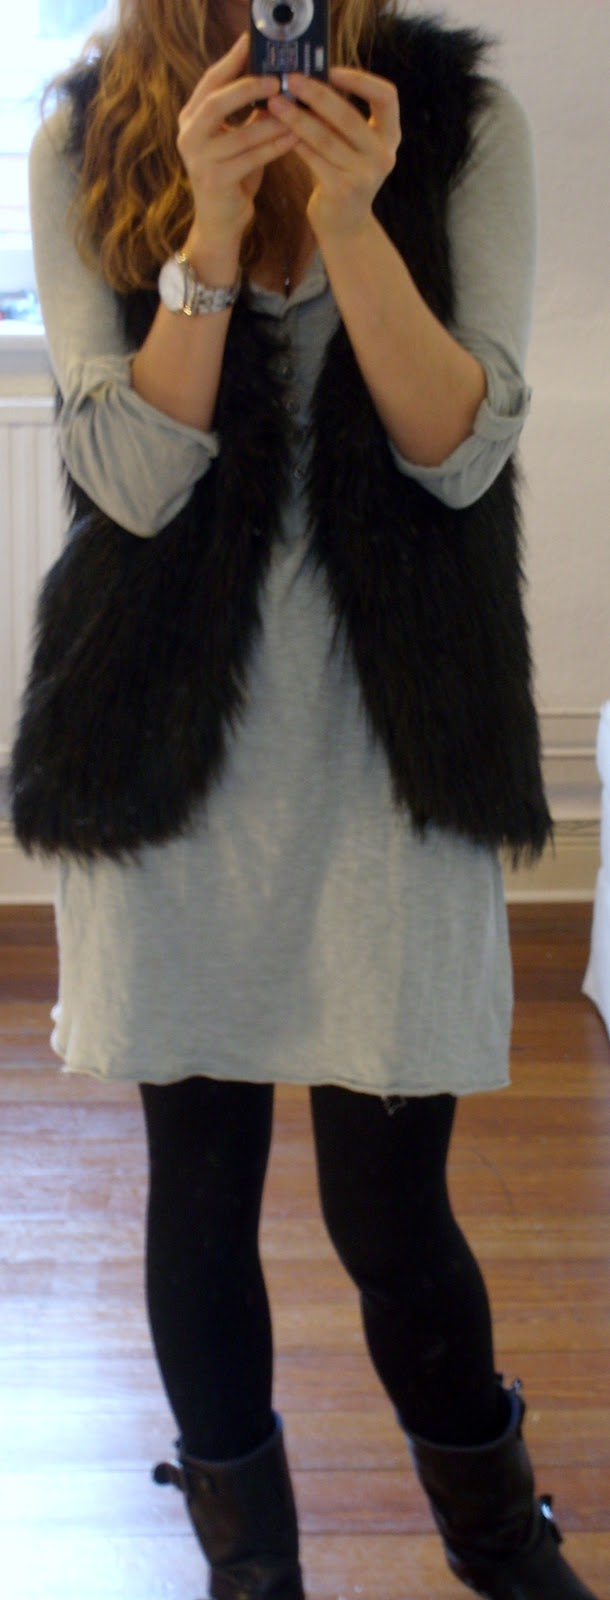 carlacrypta november 2012. Black Bedroom Furniture Sets. Home Design Ideas